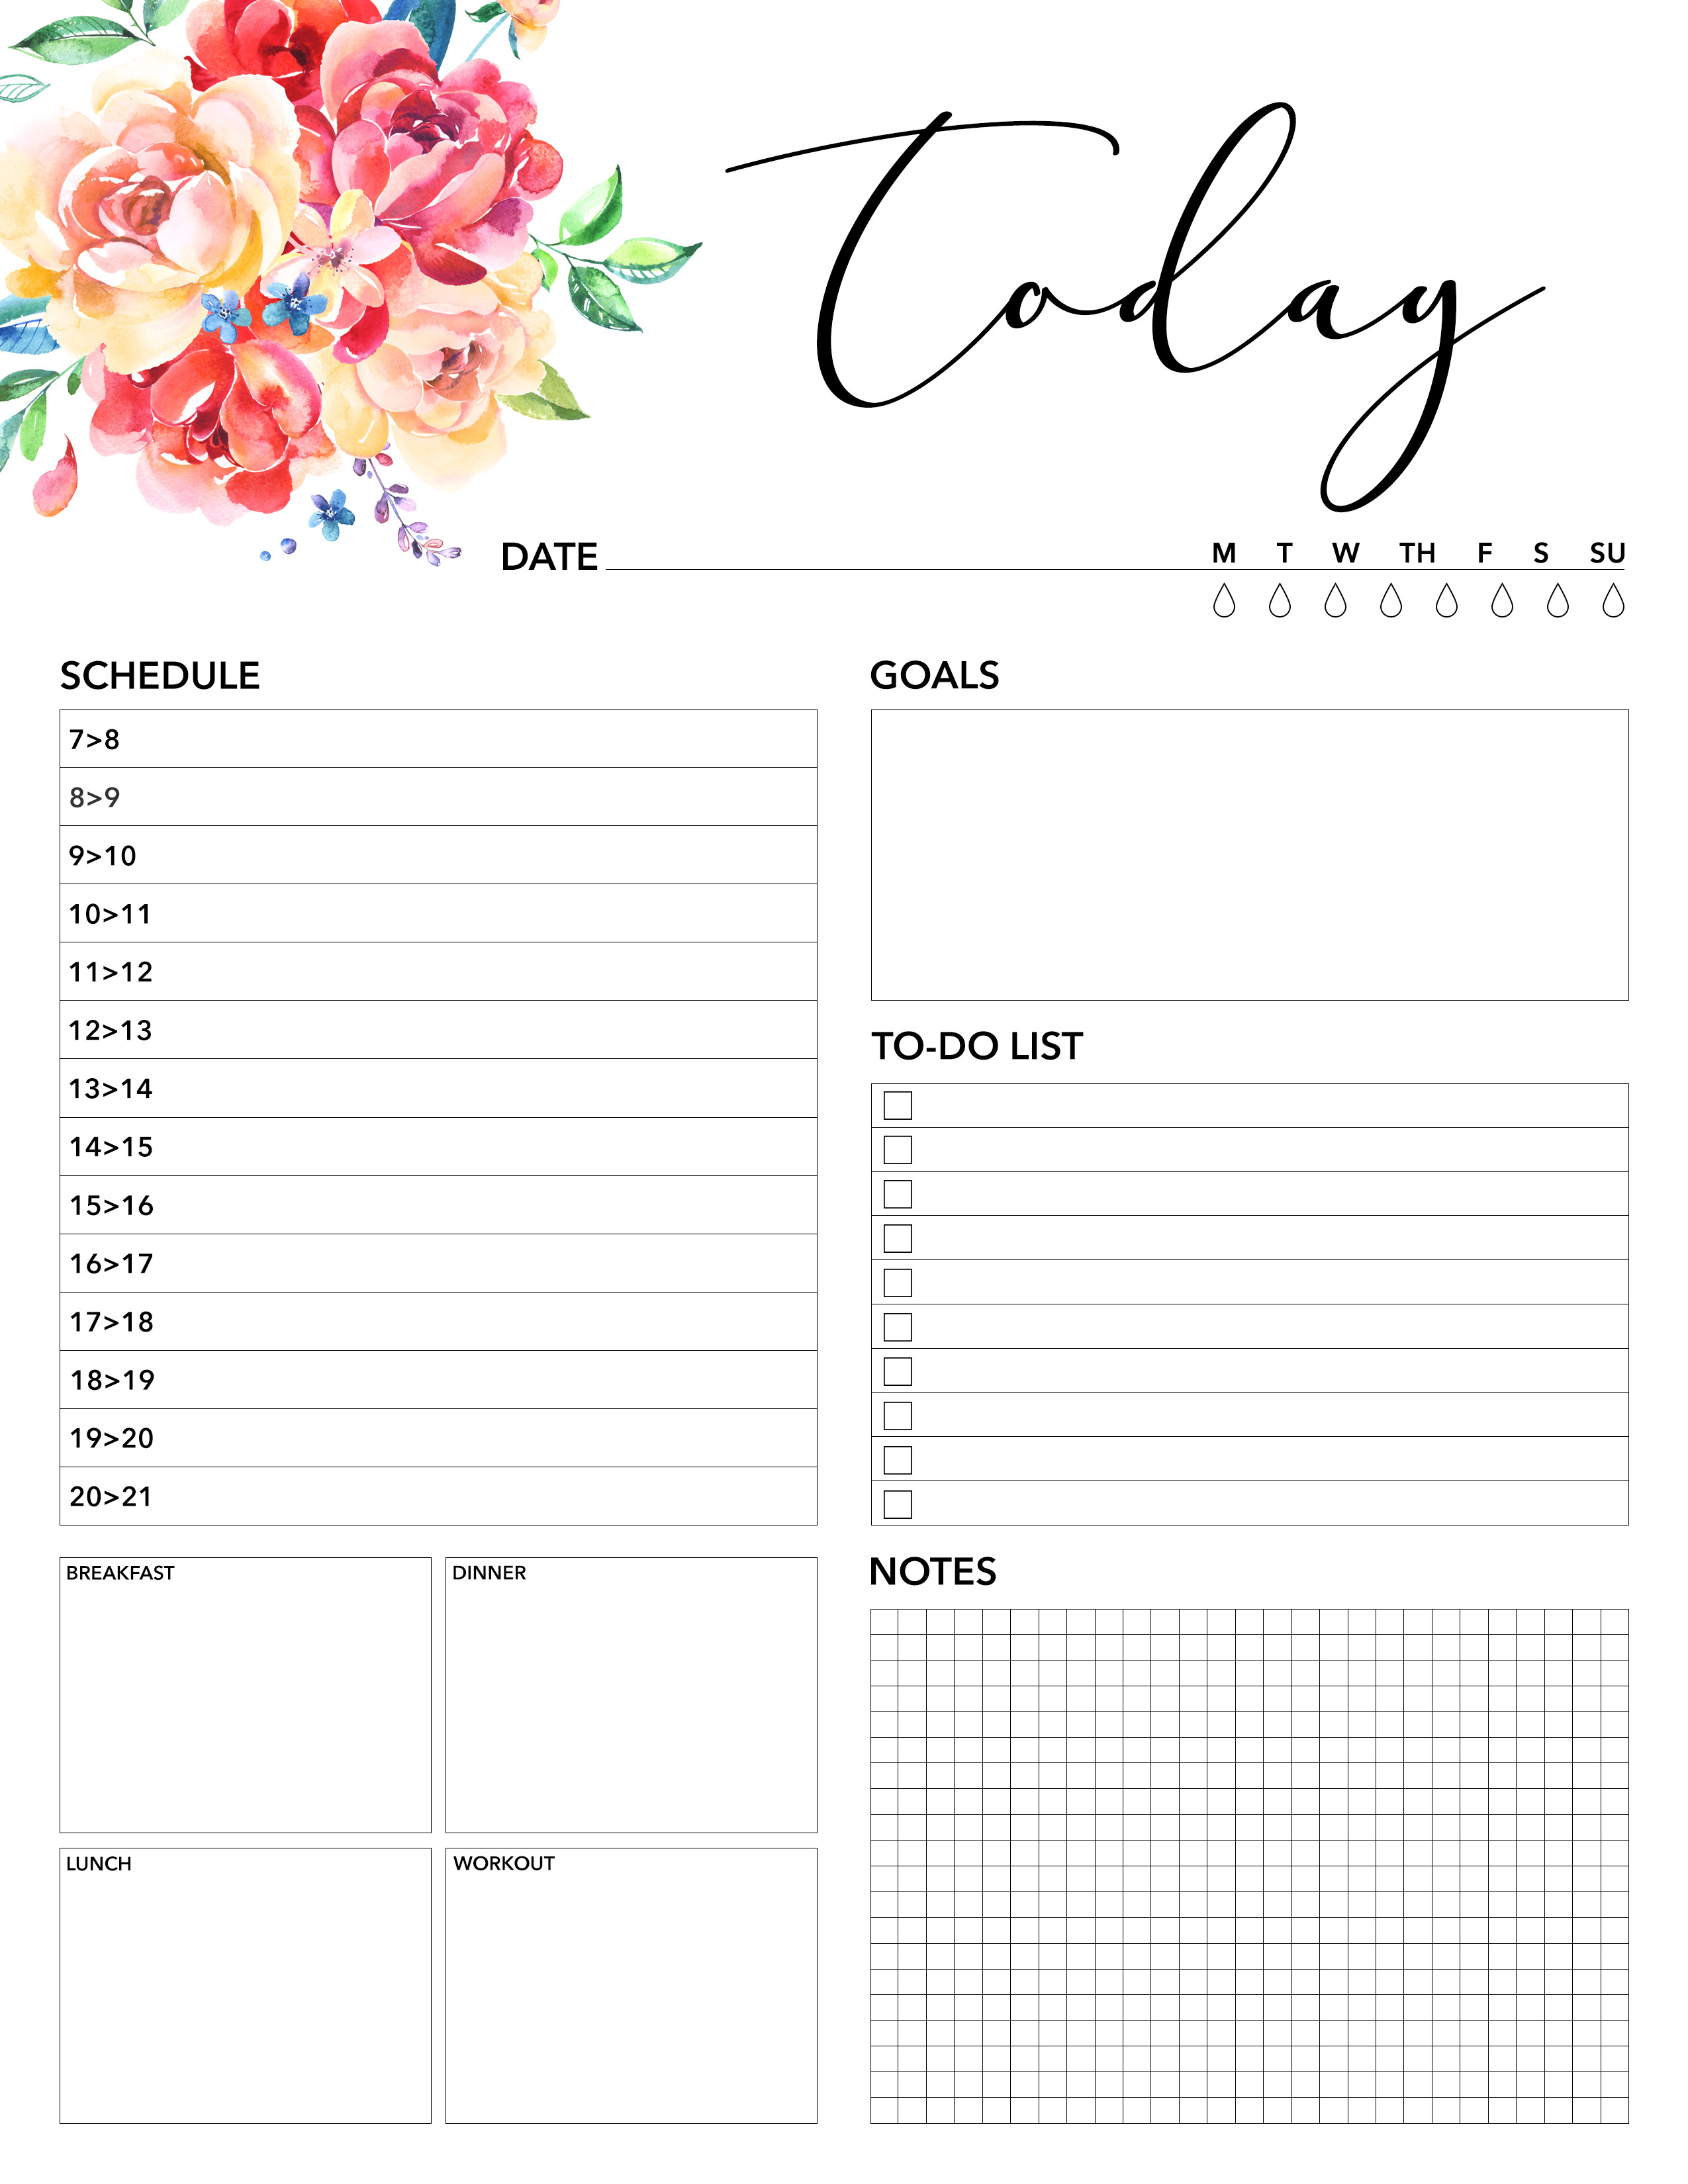 Free Printable 2018 Planner 50 Plus Printable Pages - The Cottage Market - Free Printable Planner 2017 2018